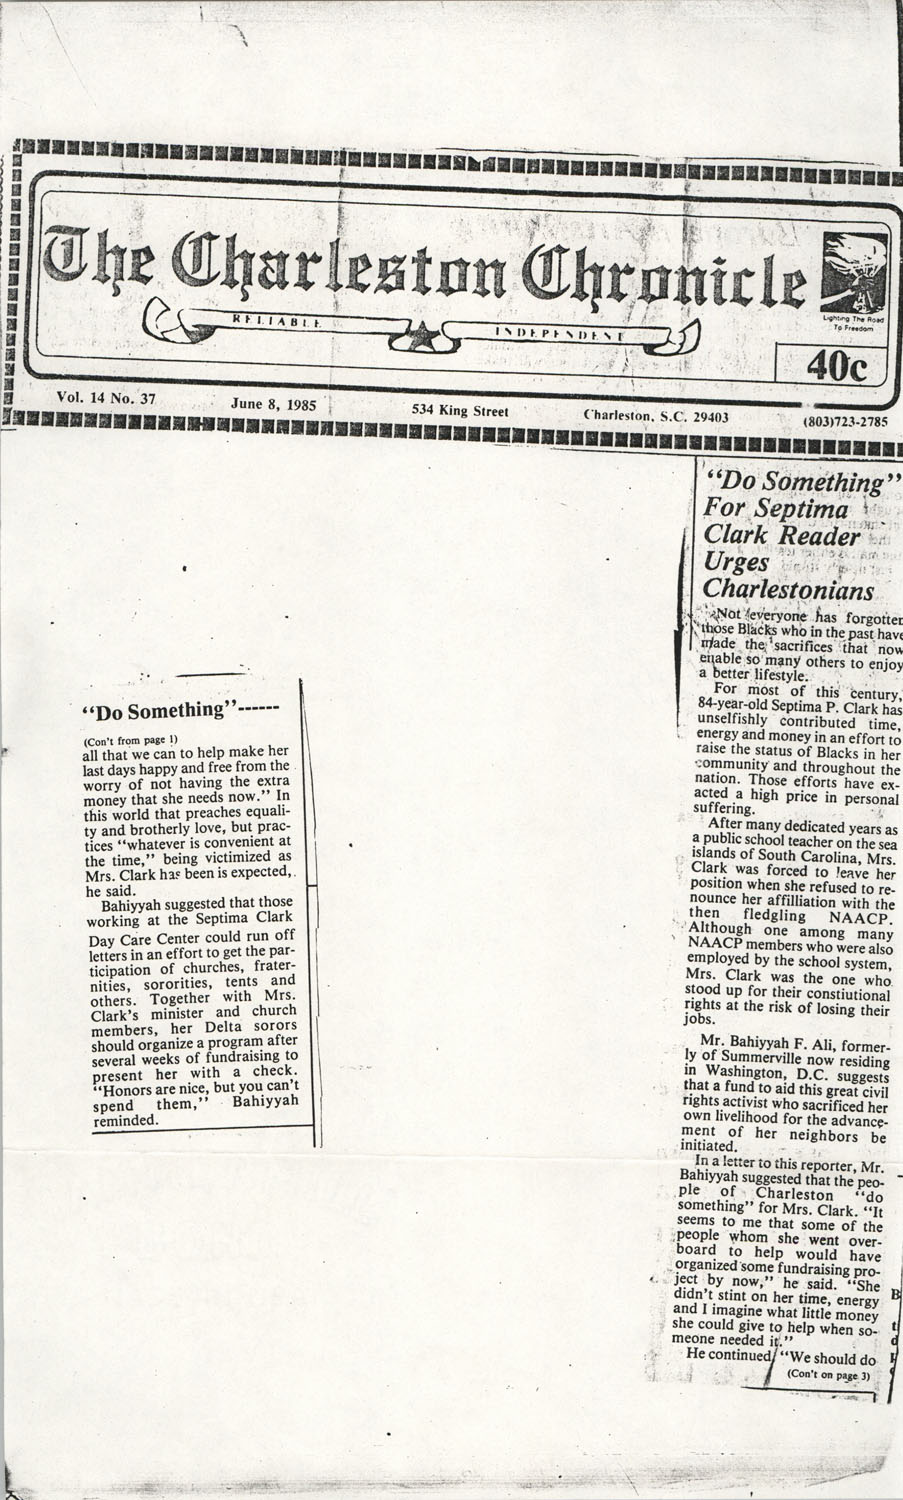 Newspaper Article, June 8, 1985